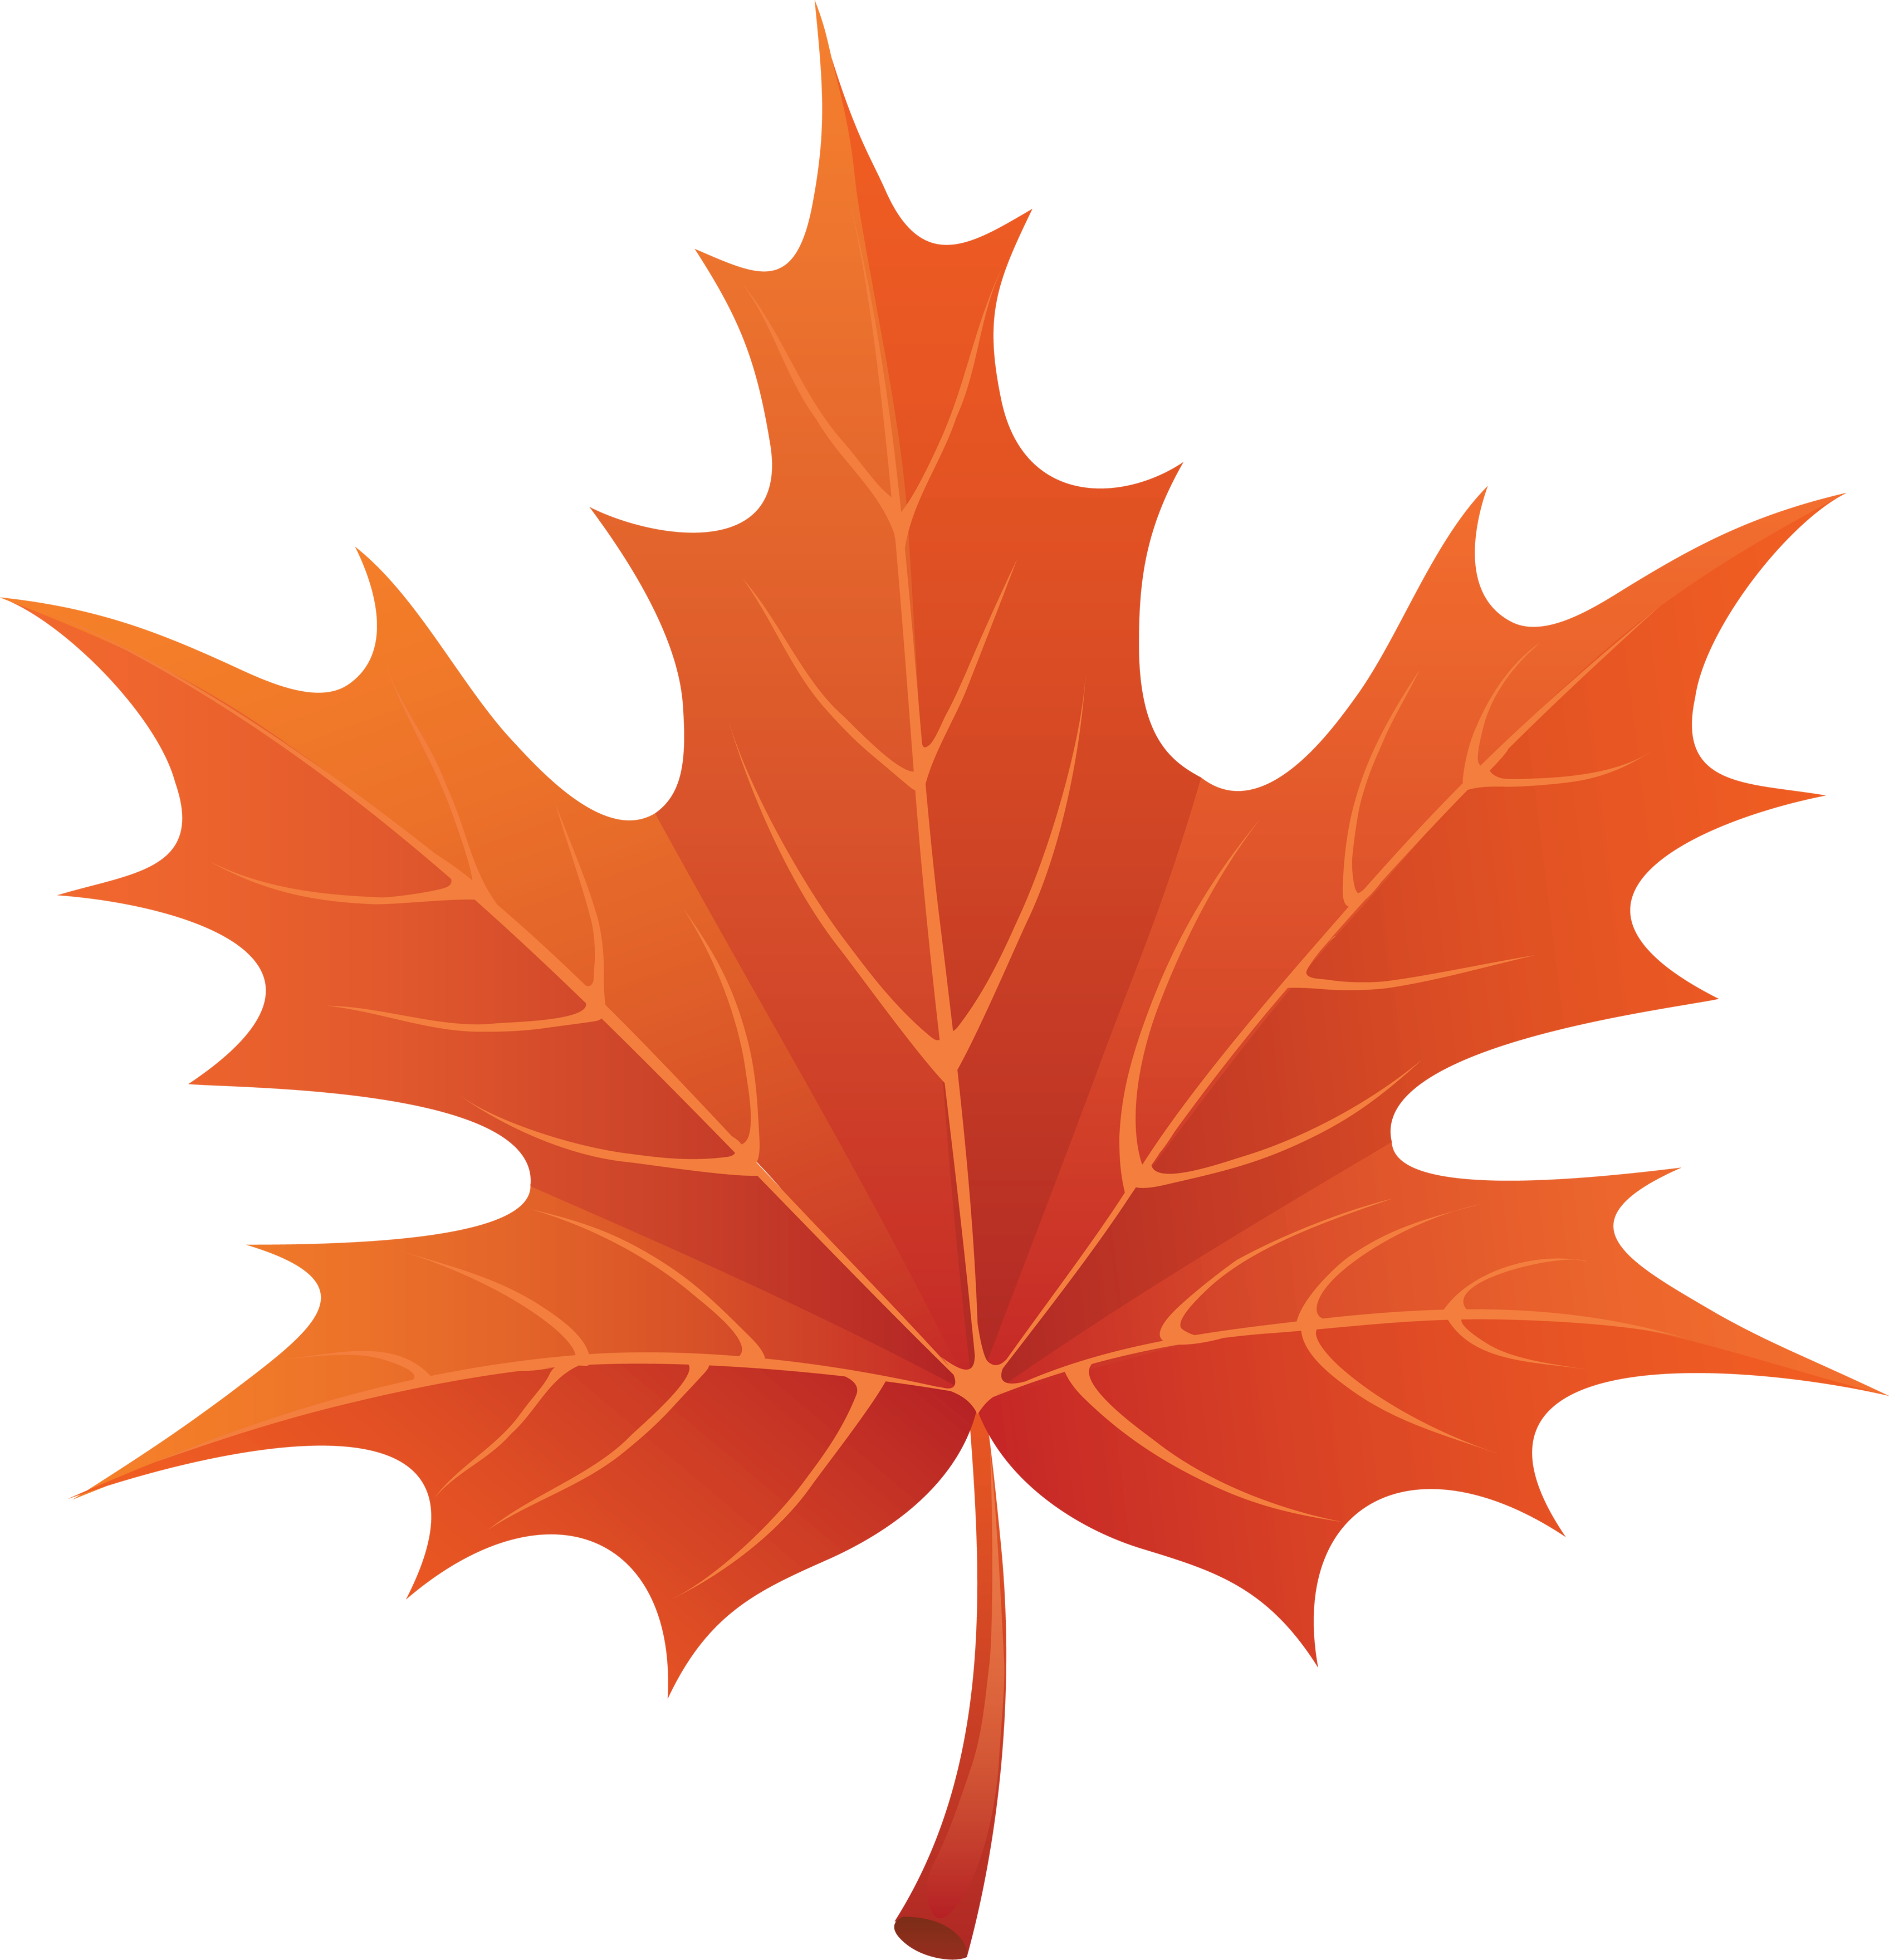 Maple Leaves Clipart - Clipart Suggest-Maple Leaves Clipart - Clipart Suggest-16